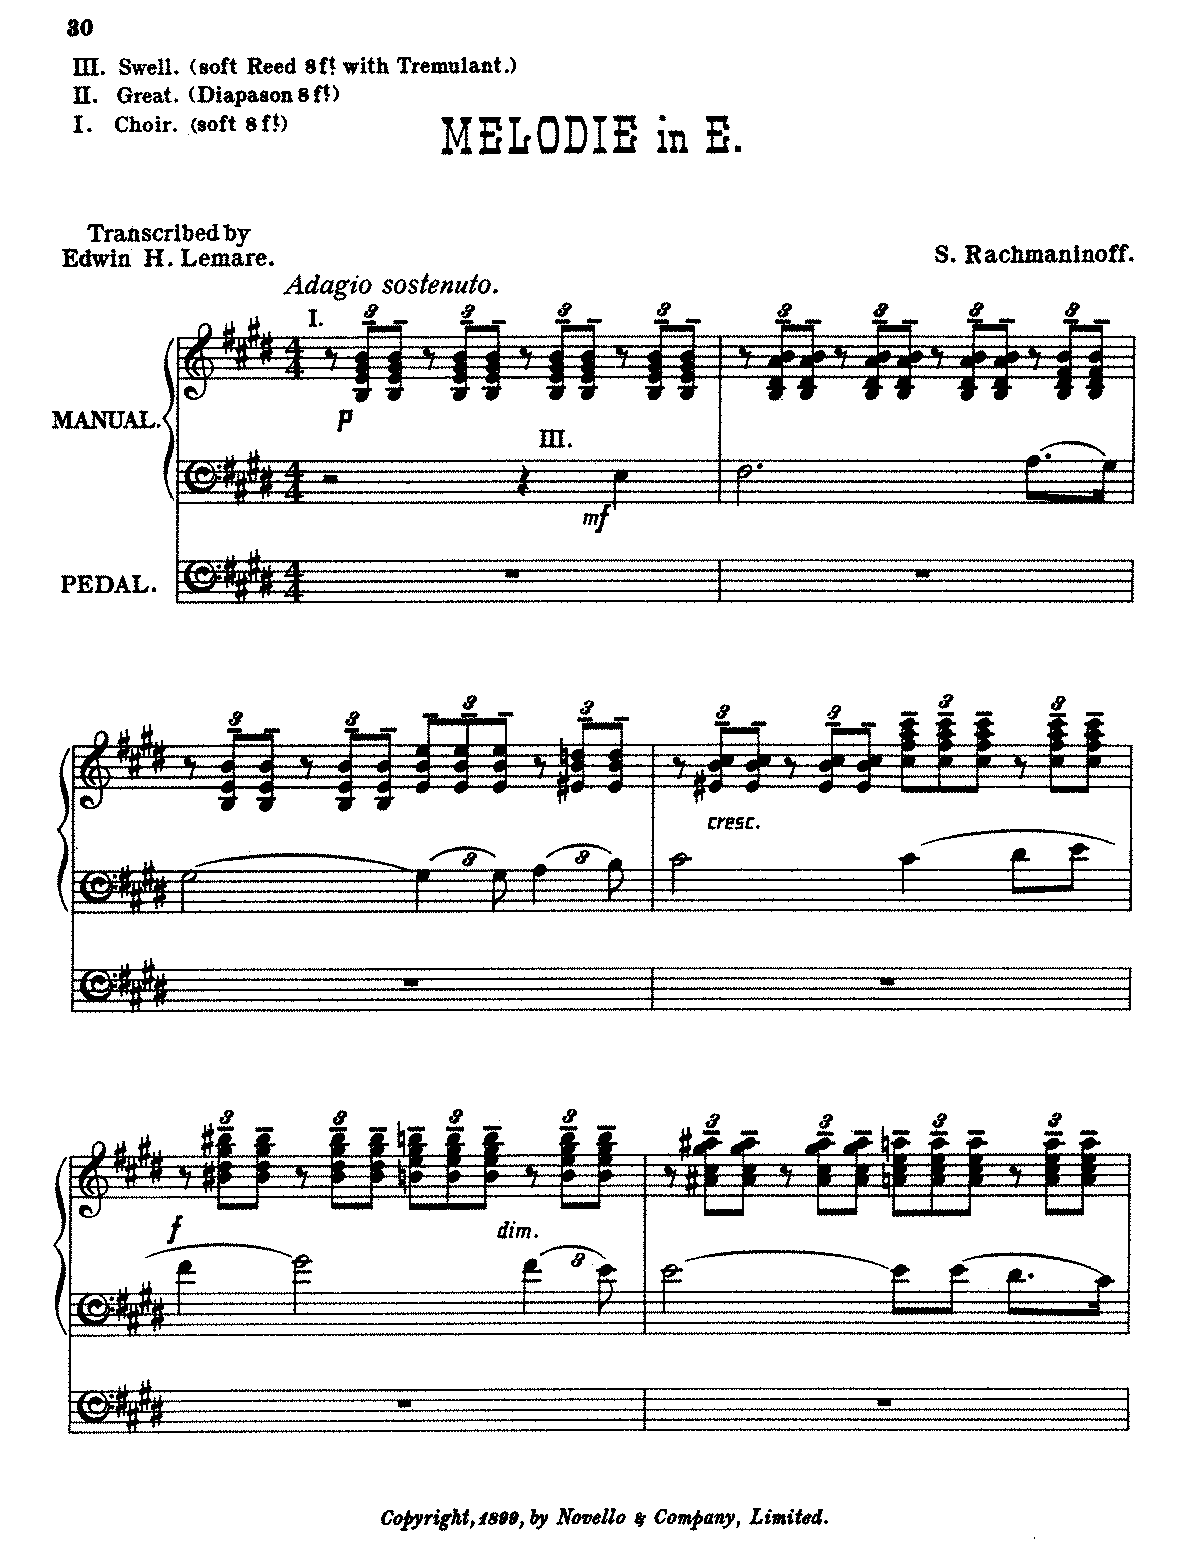 PMLP05664-Rachmaninoff-Lemare Melodie in E.pdf